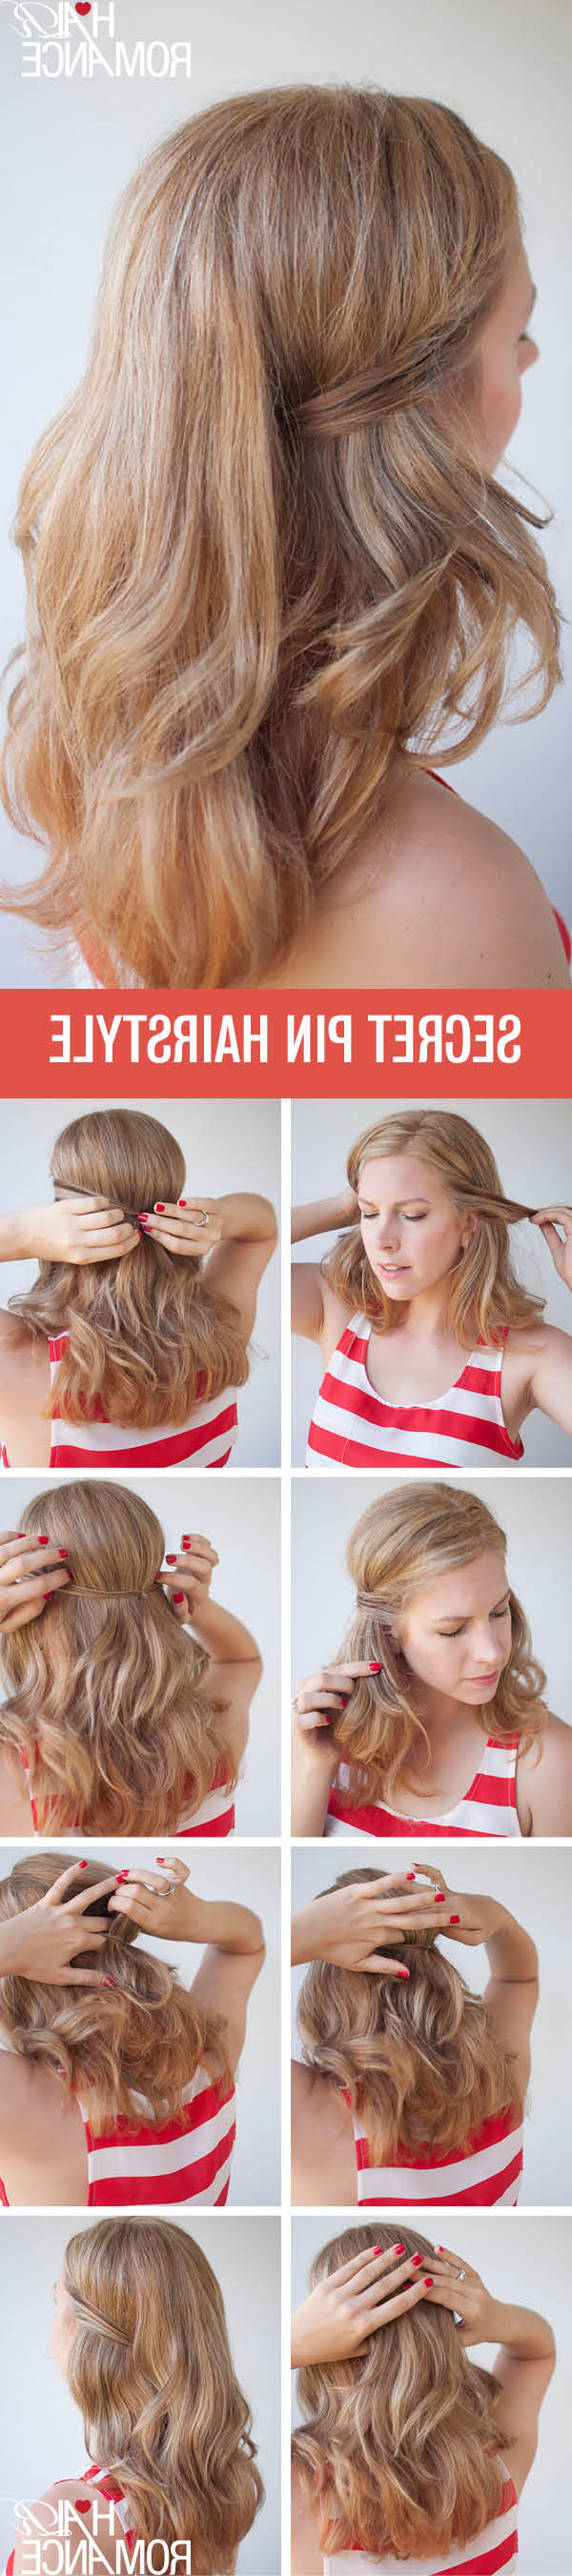 Two Easy Ways To Pin Back Your Hair – Hair Romance Within Recent Pinned Back Side Hairstyles (Gallery 8 of 20)